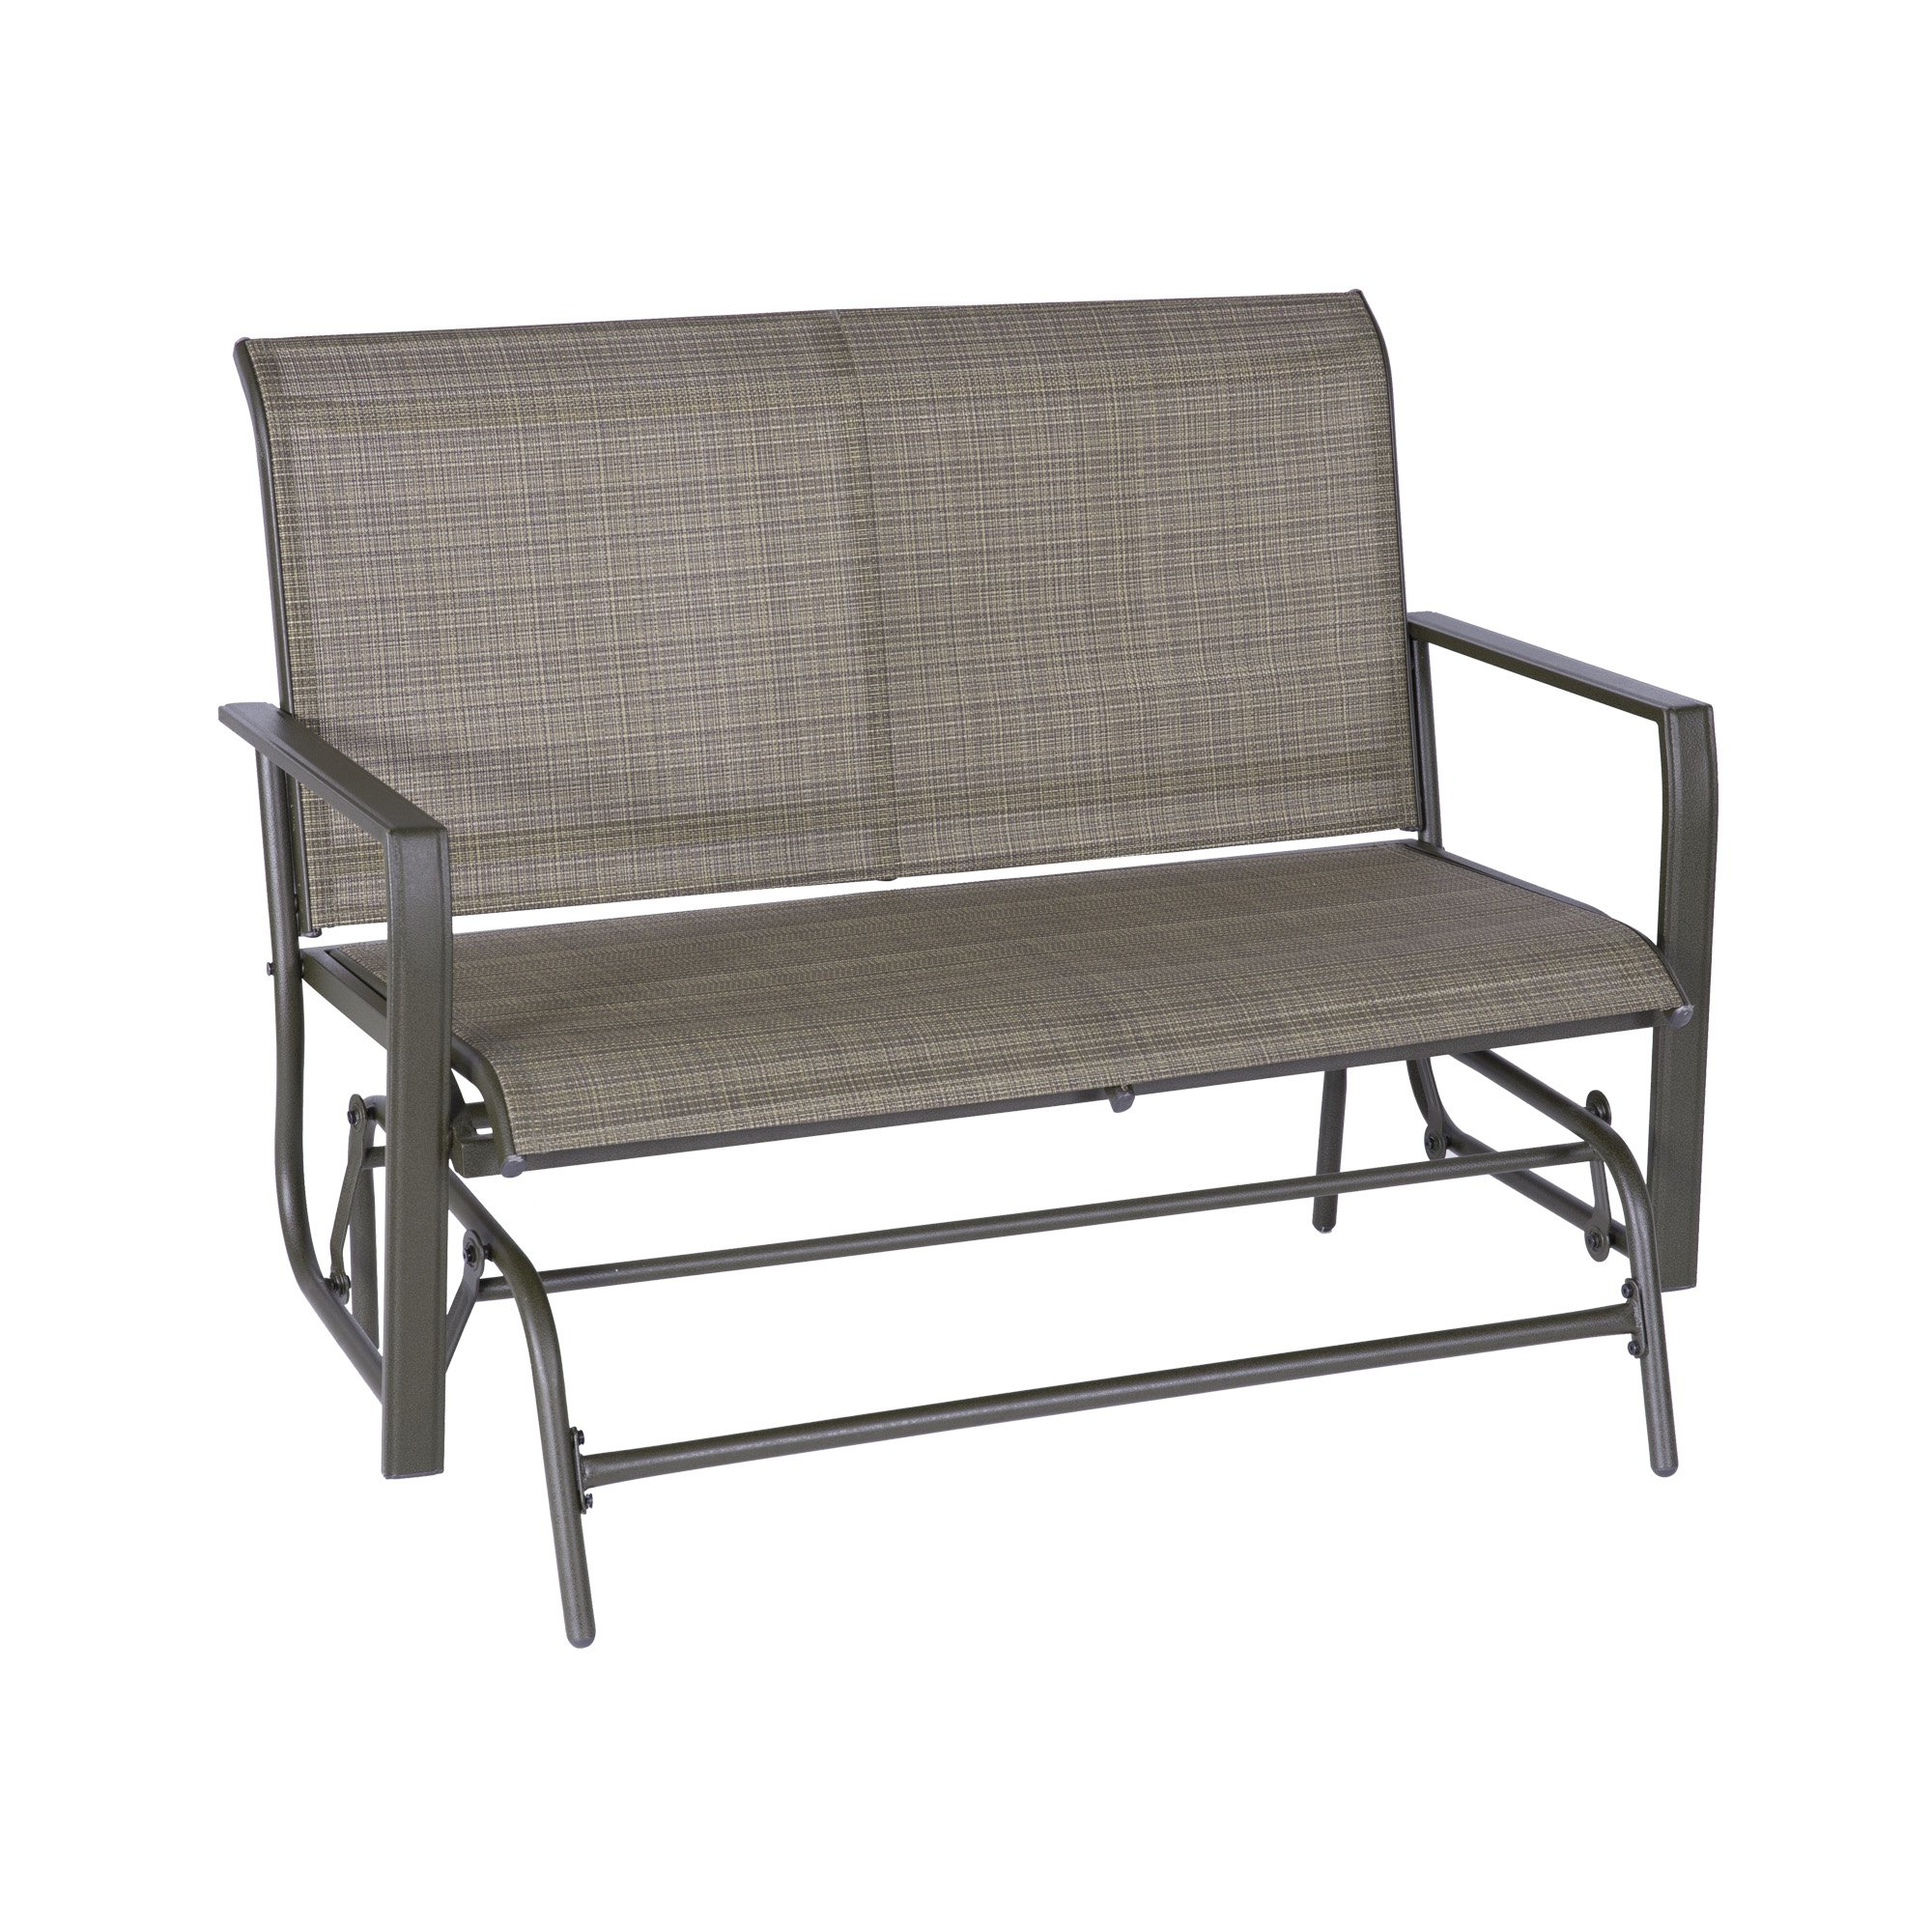 Well Known Patio Glider Bench Loveseat Outdoor Cushioed 2 Person In Outdoor Patio Swing Glider Bench Chairs (View 14 of 30)